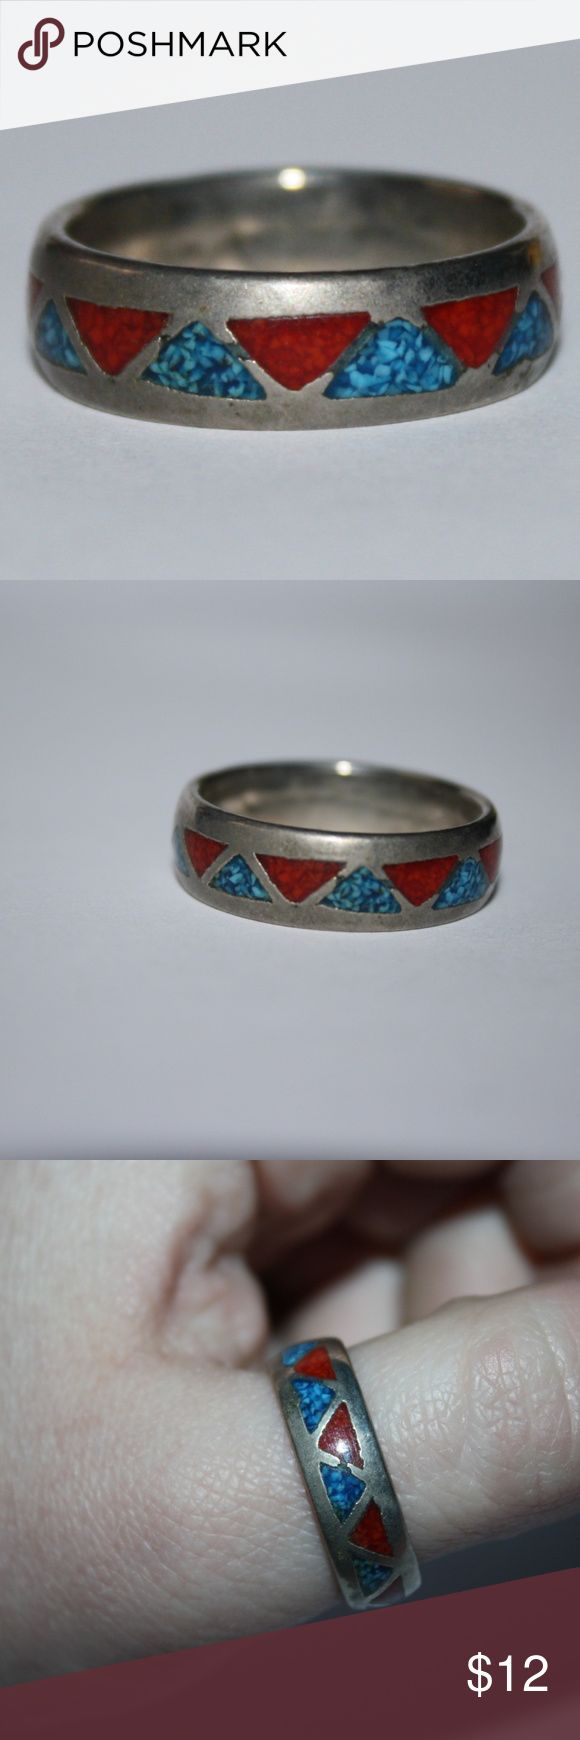 Nickel Silver band with turquoise and coral Nickel silver ring, size 11. beautiful coral and turquoise inlay.   Buy from me with confidence! I have sold over 100 items with a 5 star rating! If you have any questions, do not hesitate to ask.  Looking at a few things in my shop? Put a bundle together, comment on an item that you are ready to check out and let me send you an even better offer!  Thank you for visiting :) Free gifts with every purchase! Jewelry Rings